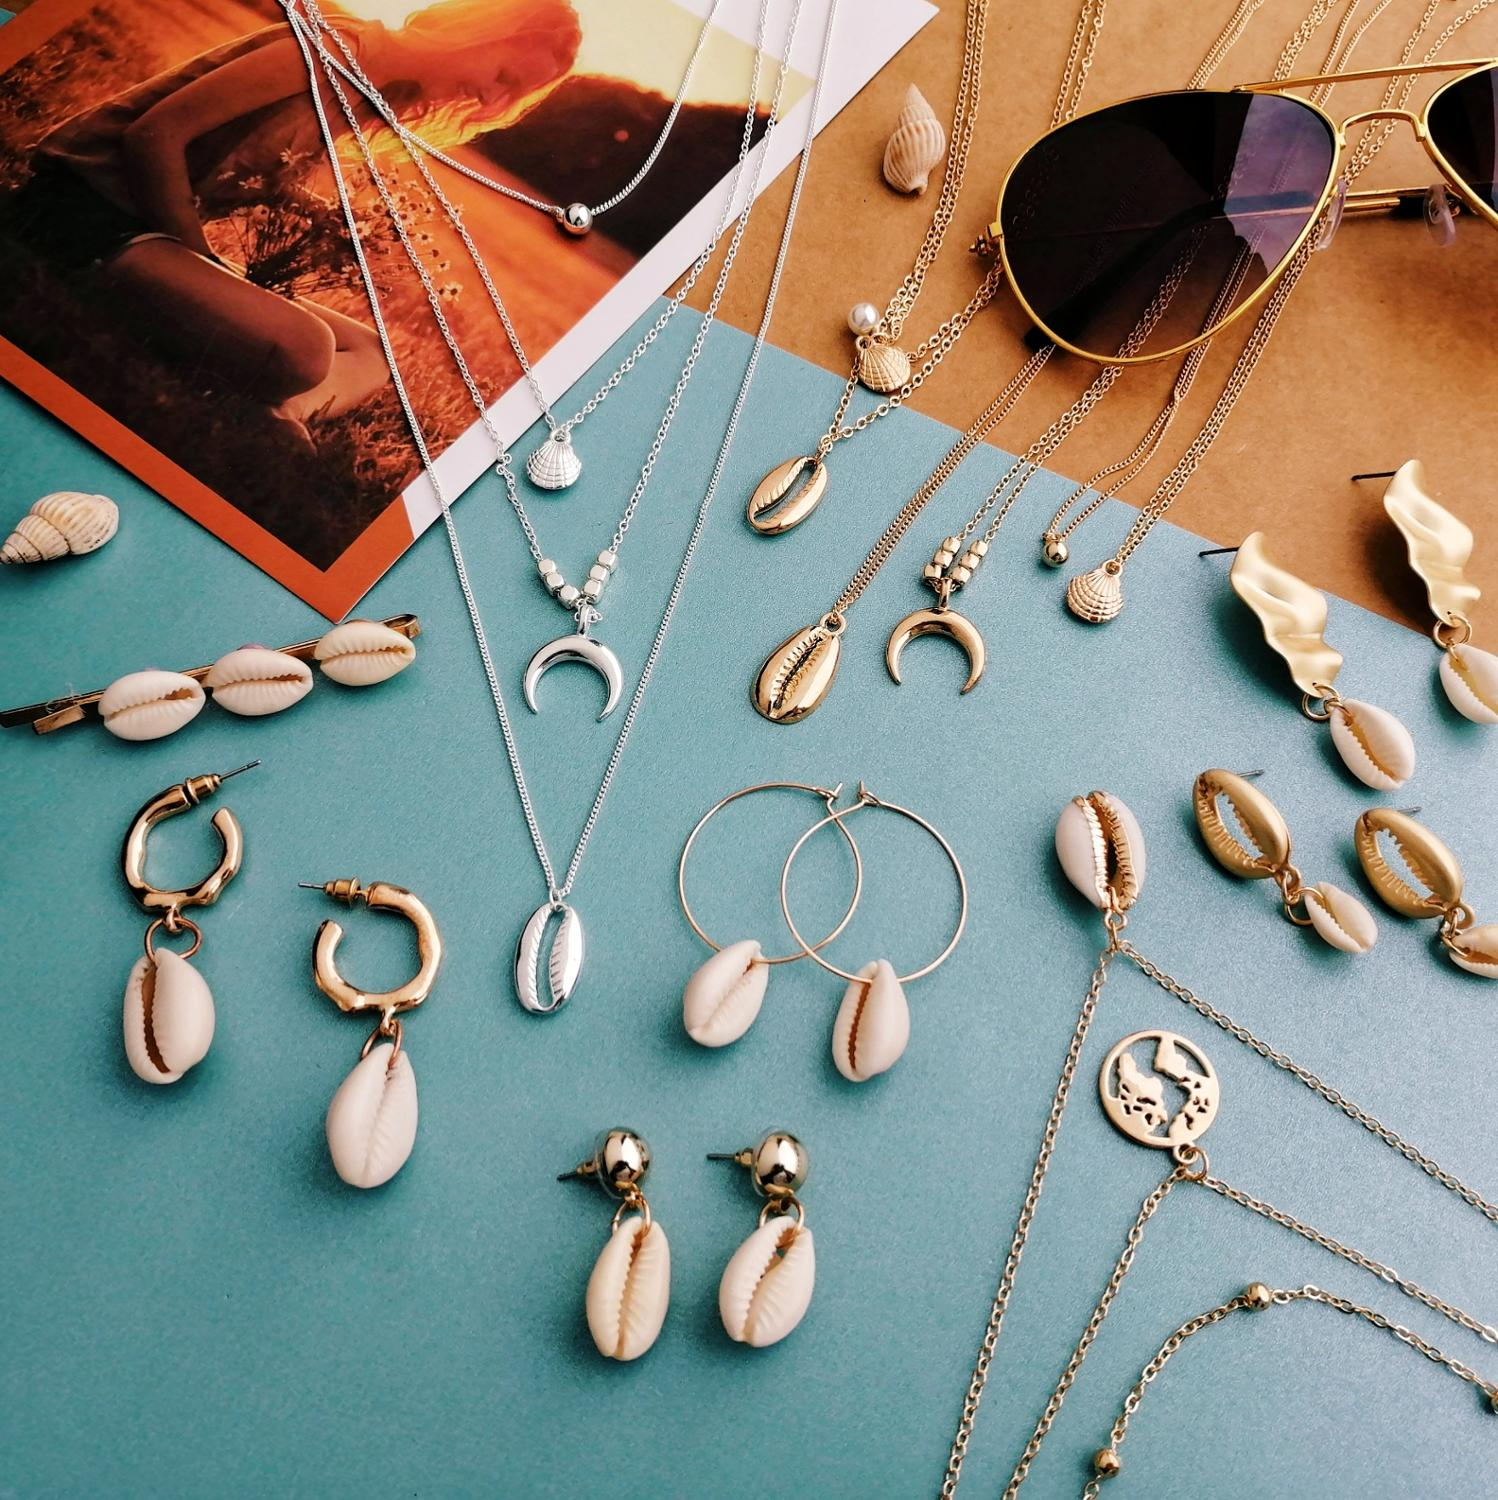 17KM Shell-Pendant-Necklaces Ocean Jewelry Gifts Multilayer Long-Choker Gold-Color Bohemian